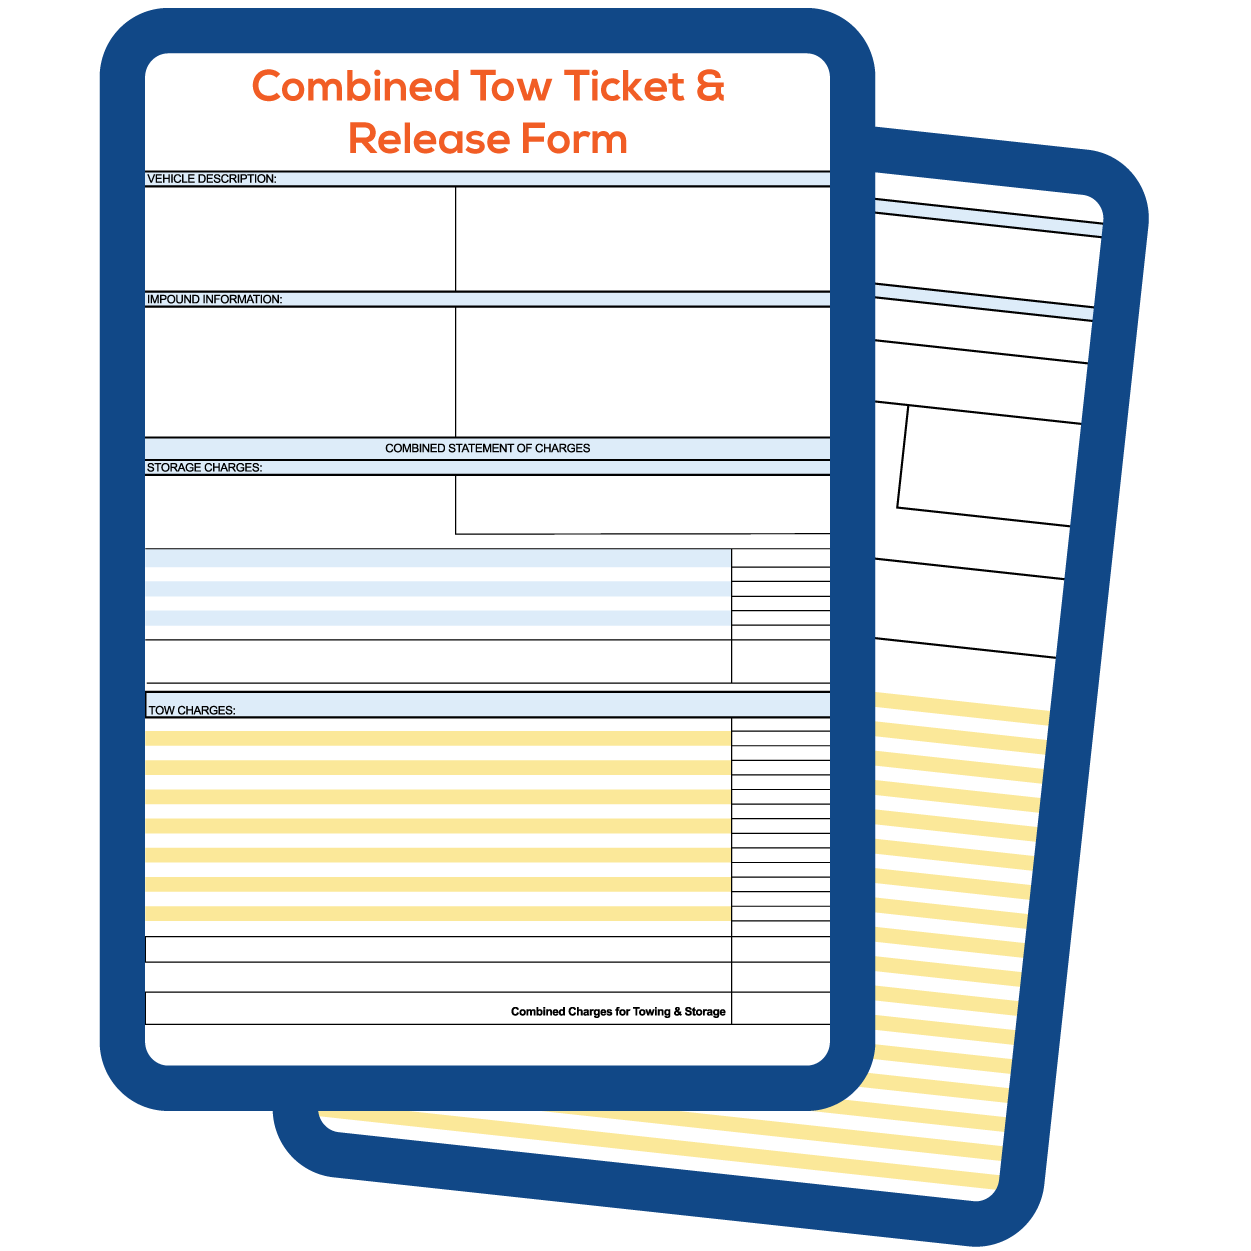 COMBINED TOW TICKET & VEHICLE RELEASE FORM